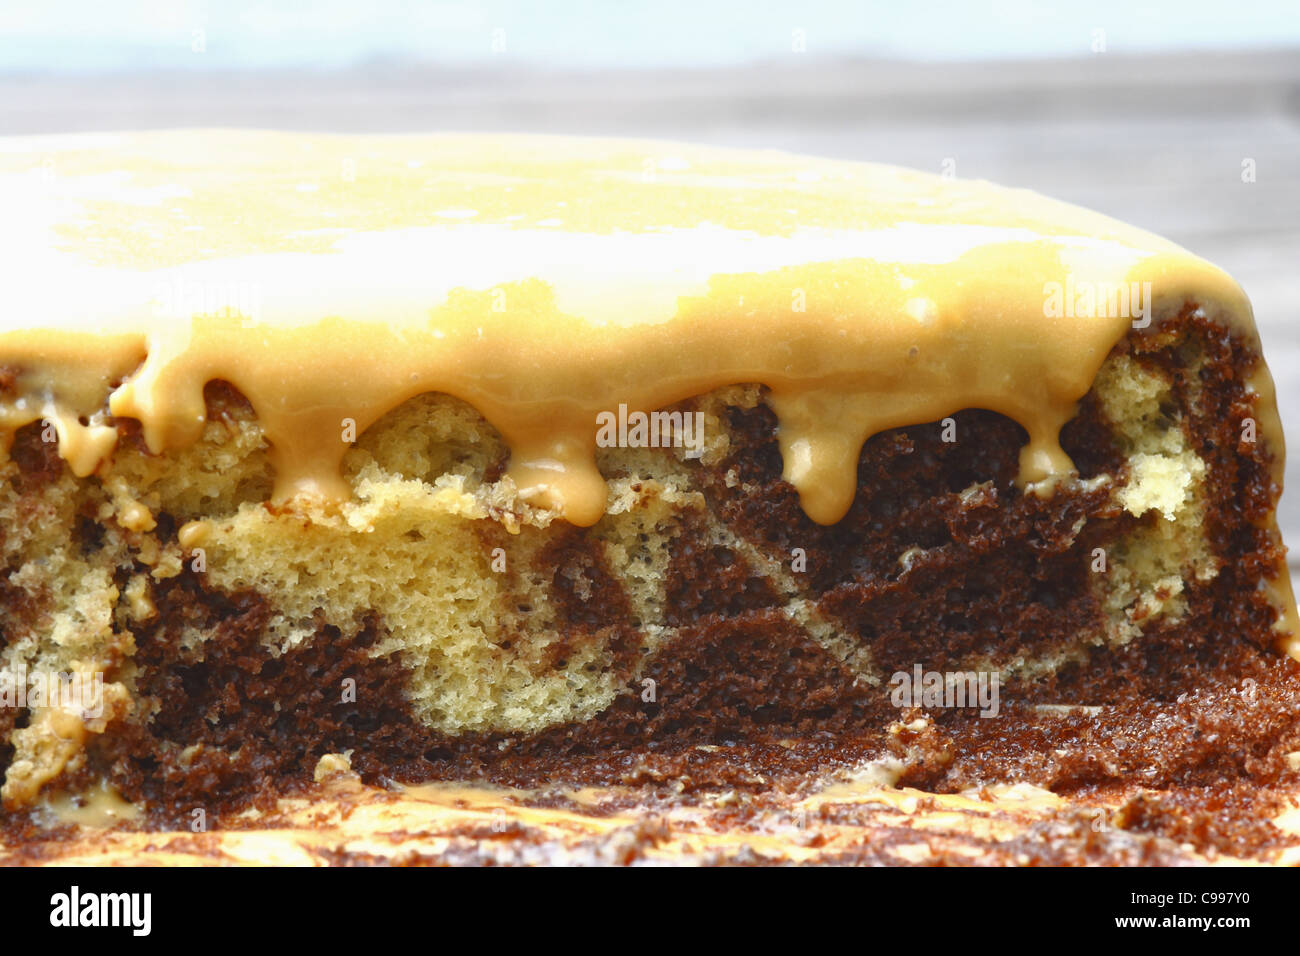 homemade cake - Stock Image